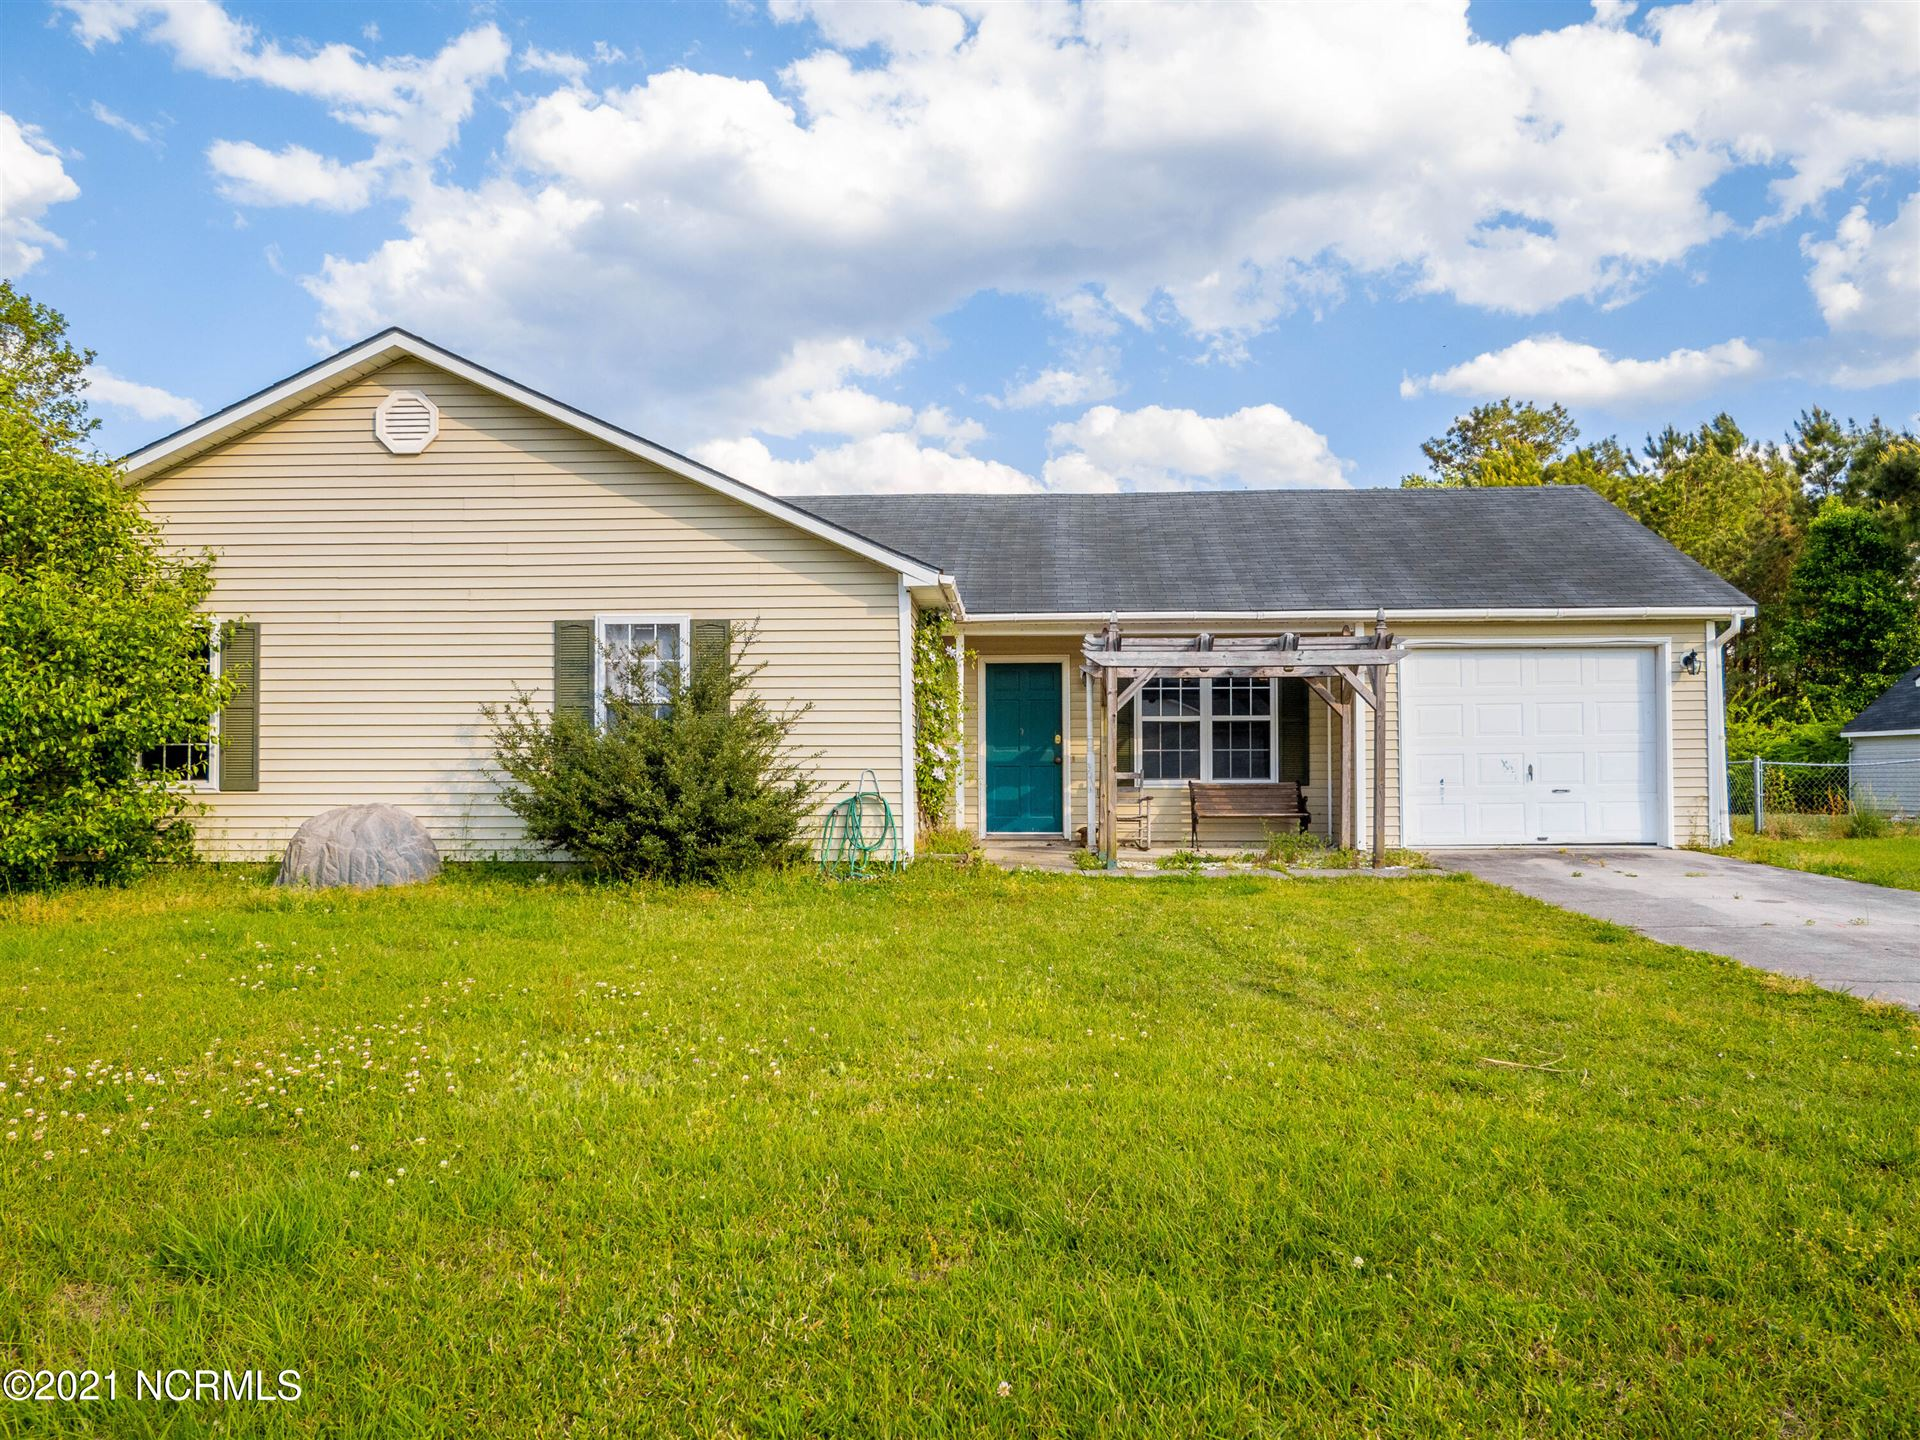 Photo for 134 Horse Shoe Bend, Jacksonville, NC 28546 (MLS # 100268546)